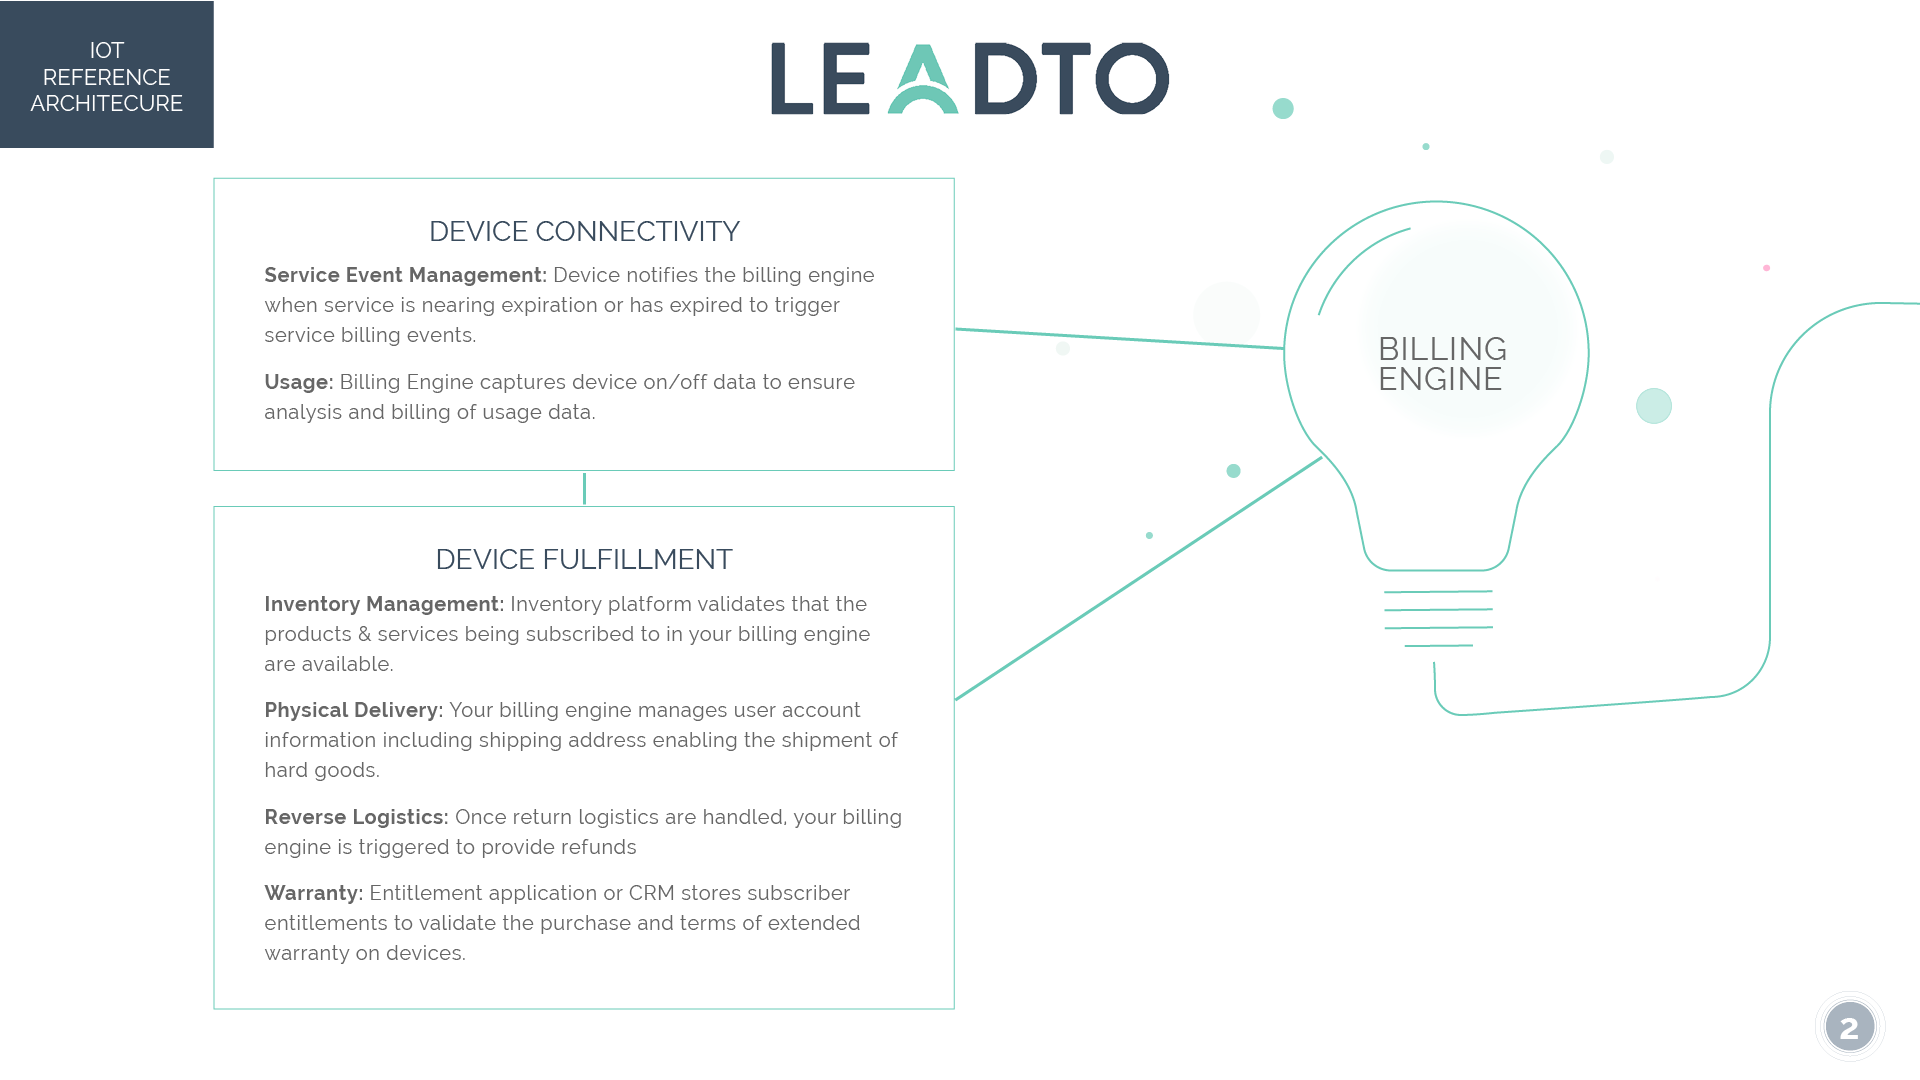 LeadTo IoT Reference Architecture2.png